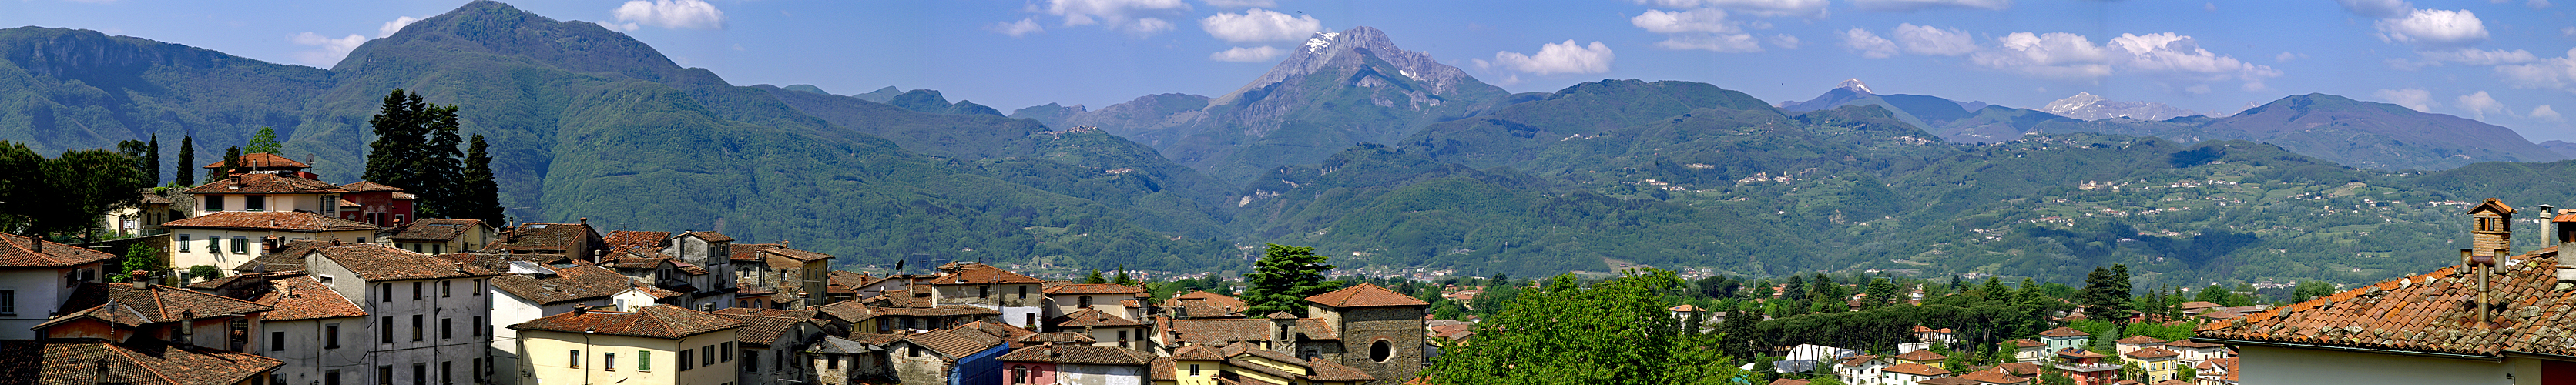 Photo panoramique de Barga et des Alpes Apuanes